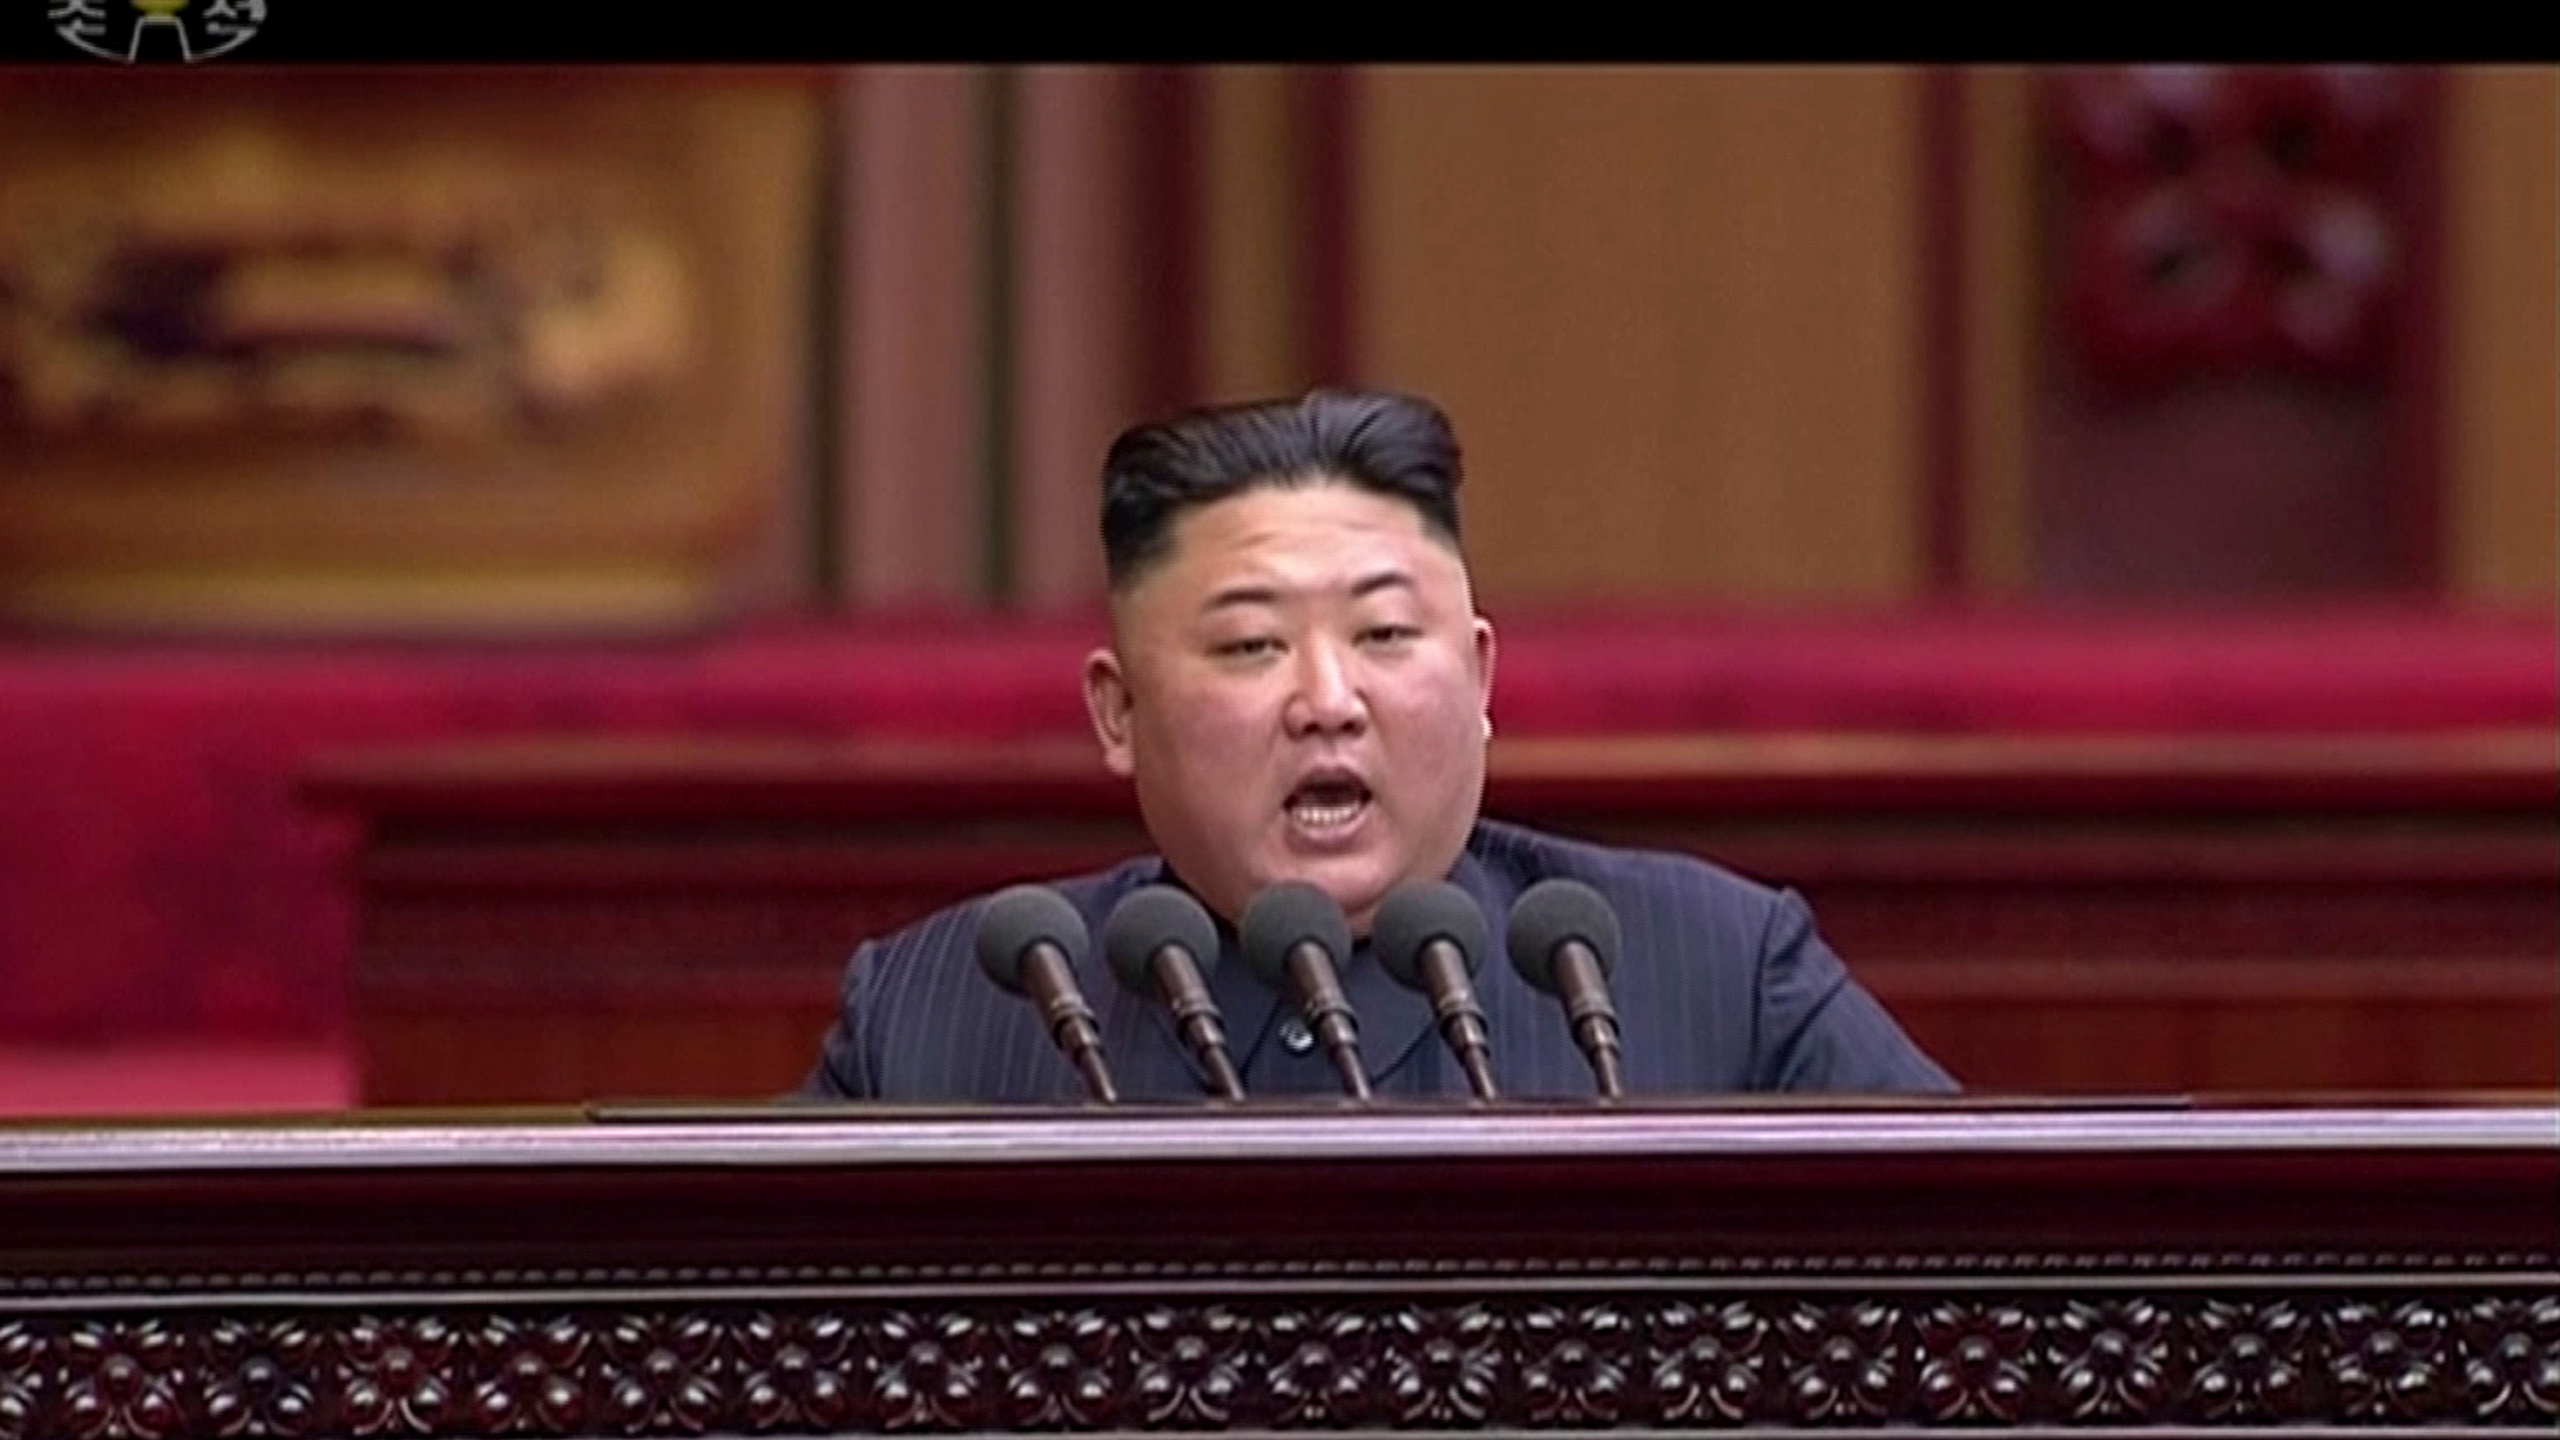 North_Korea_Kim_Jong_Un_Speech_27019-159532.jpg21717466